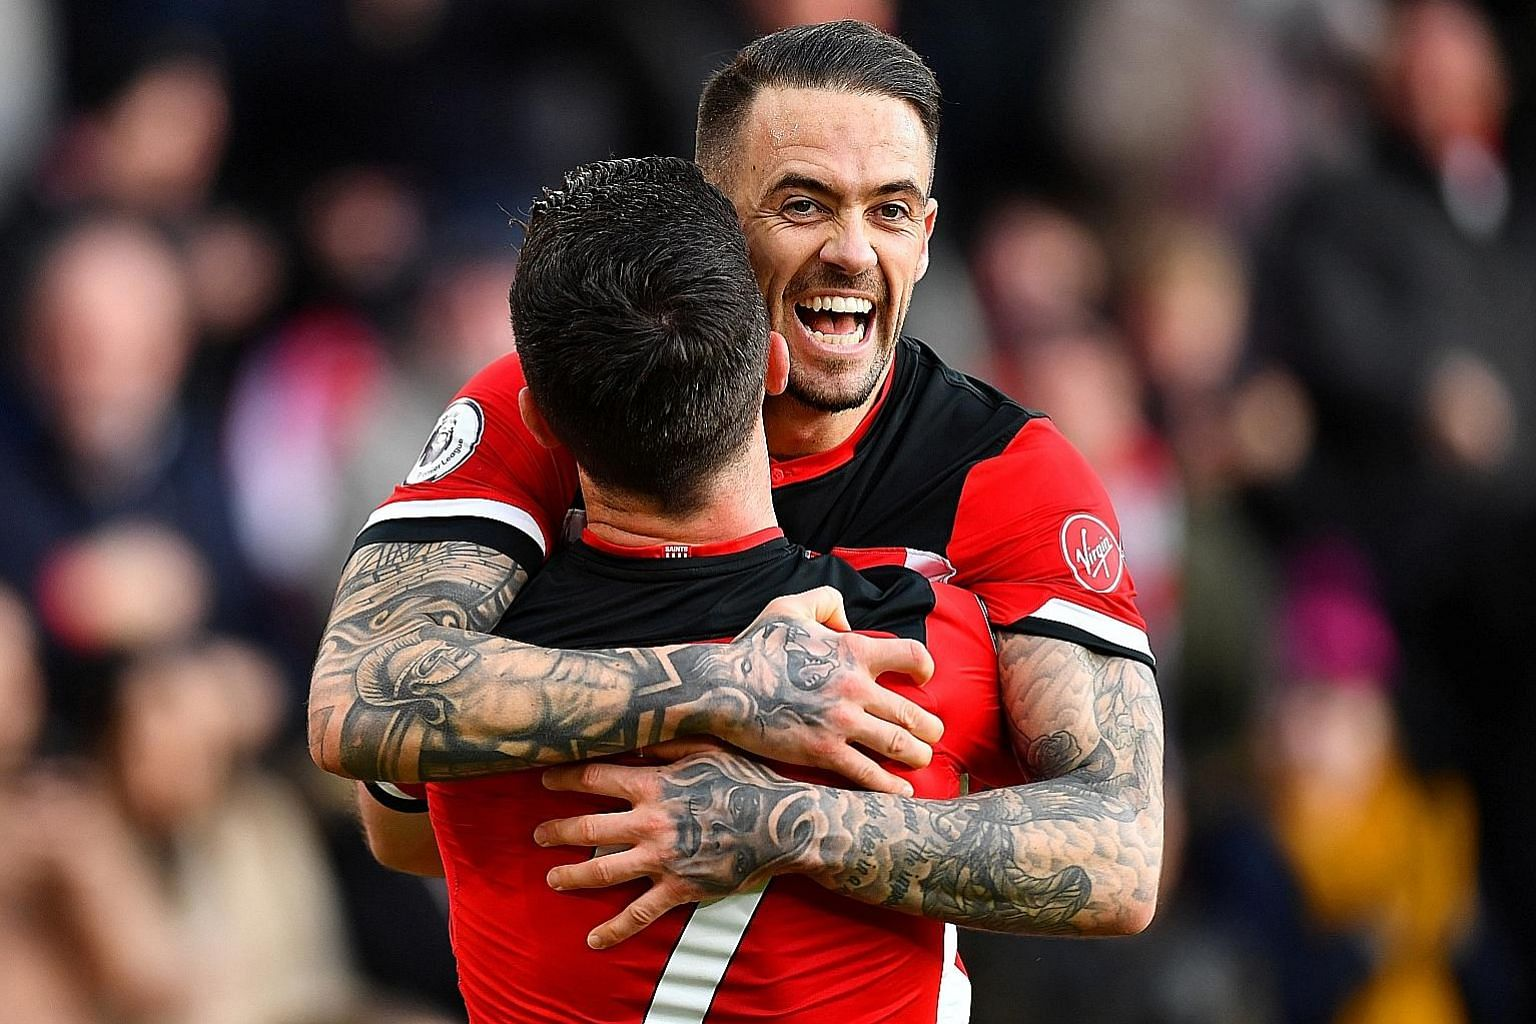 Danny Ings, who has a single England cap, is reportedly the highest-paid player at St Mary's with an annual pay packet of £3.9 million. The club's average salary is £2.3 million. PHOTO: REUTERS